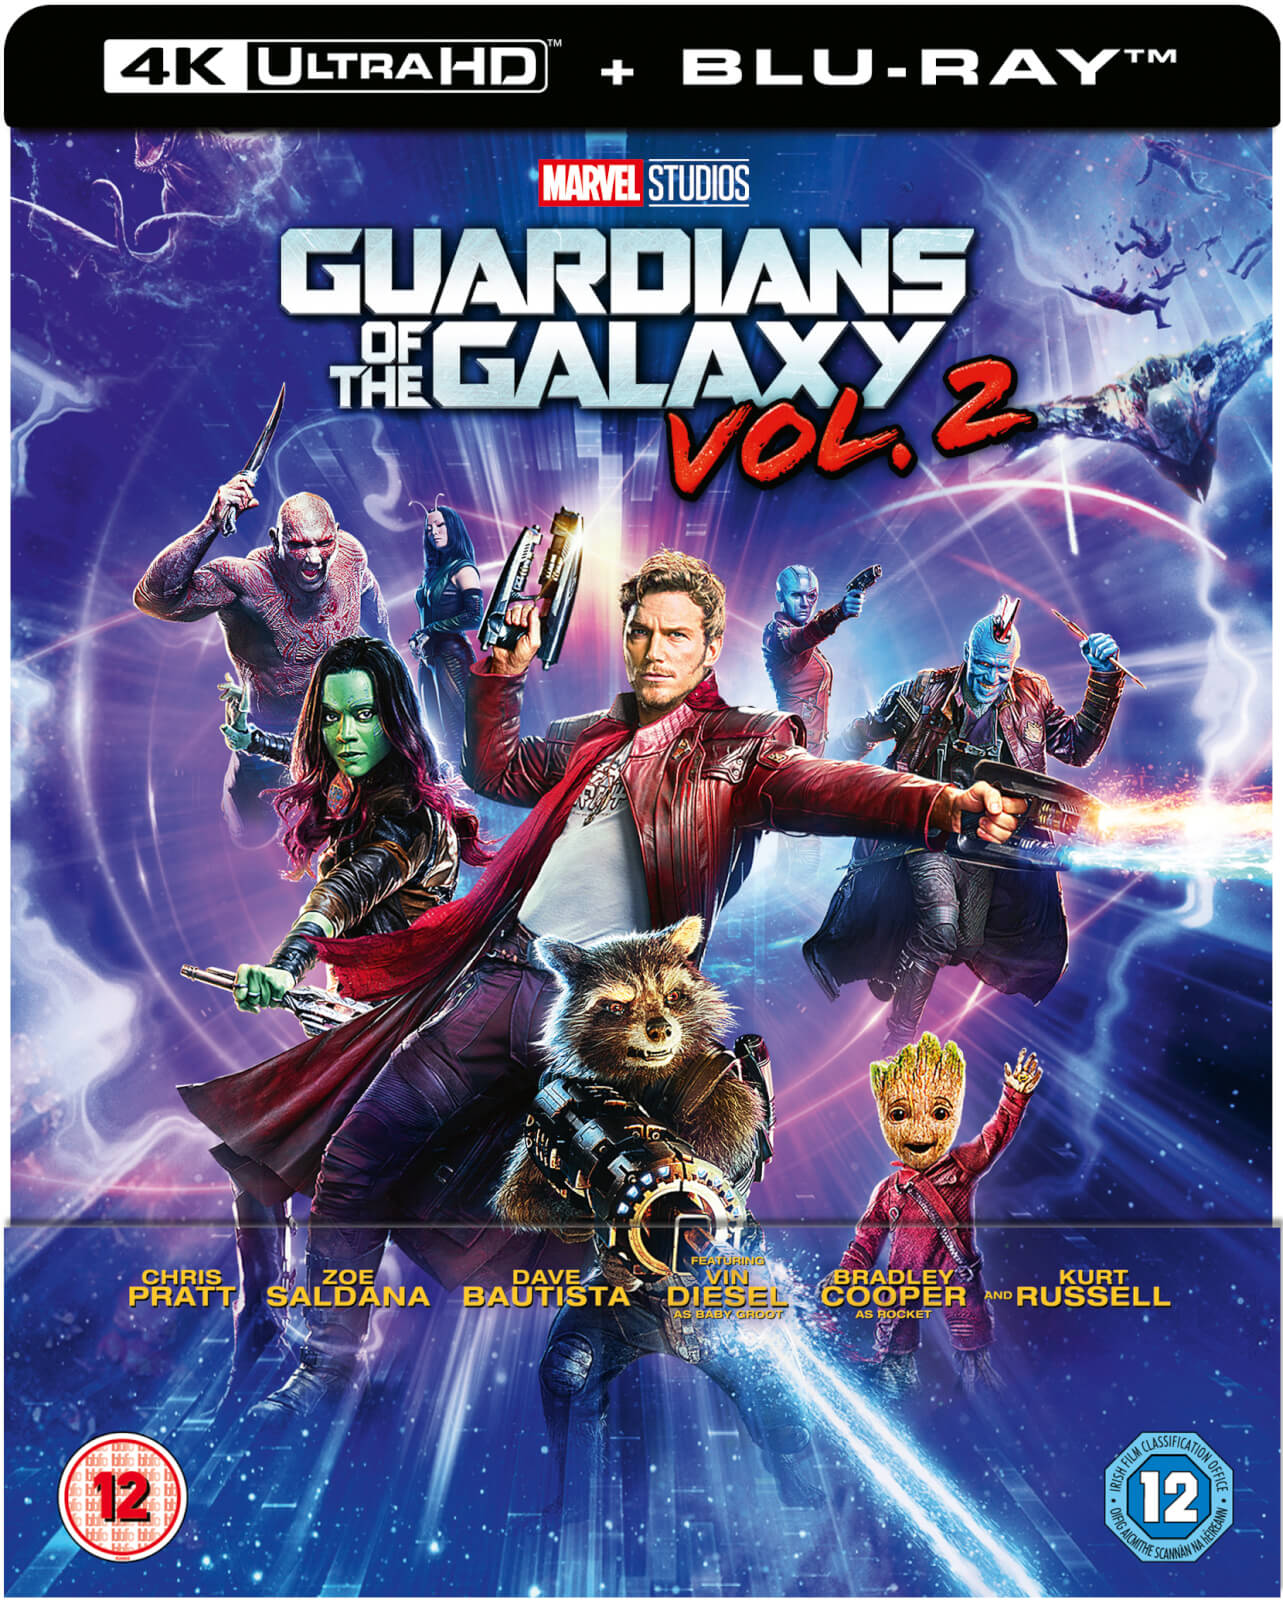 Guardians of the Galaxy Vol. 2 4K Ultra HD - Zavvi Exklusives Lentikuläre Edition SteelBook (Inkl. 2D Blu-ray)